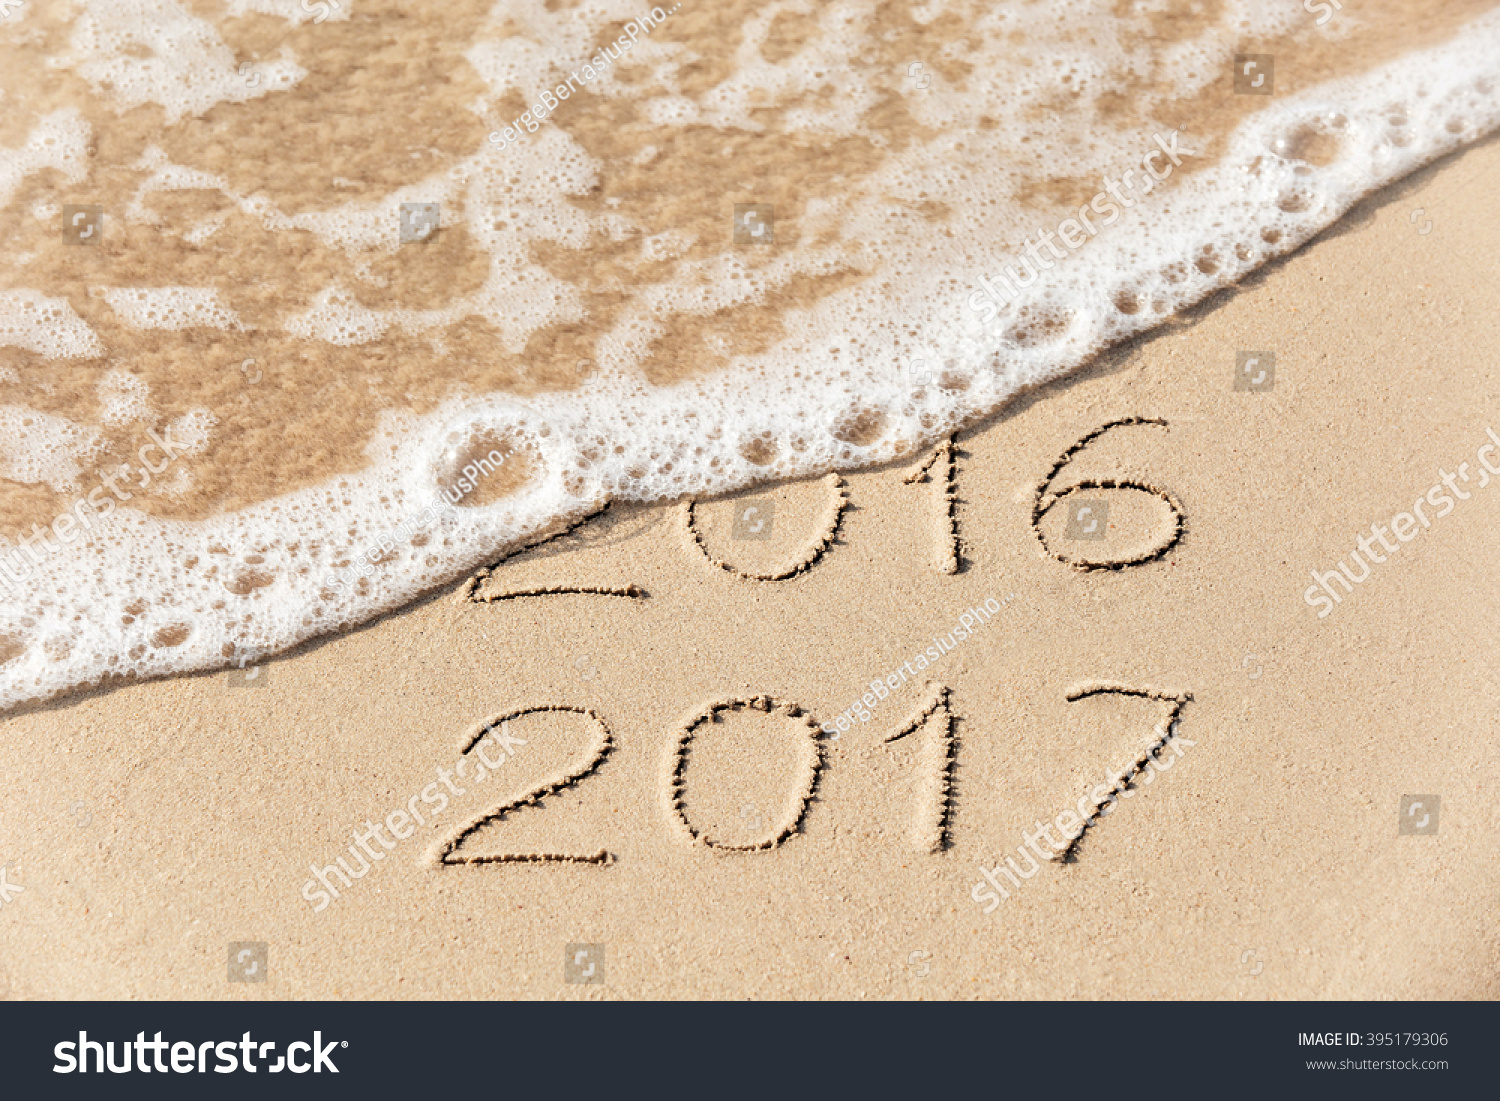 2016 2017  inscription written in the wet yellow beach sand being washed with sea water wave. Concept of celebrating the New Year at some exotic place #395179306